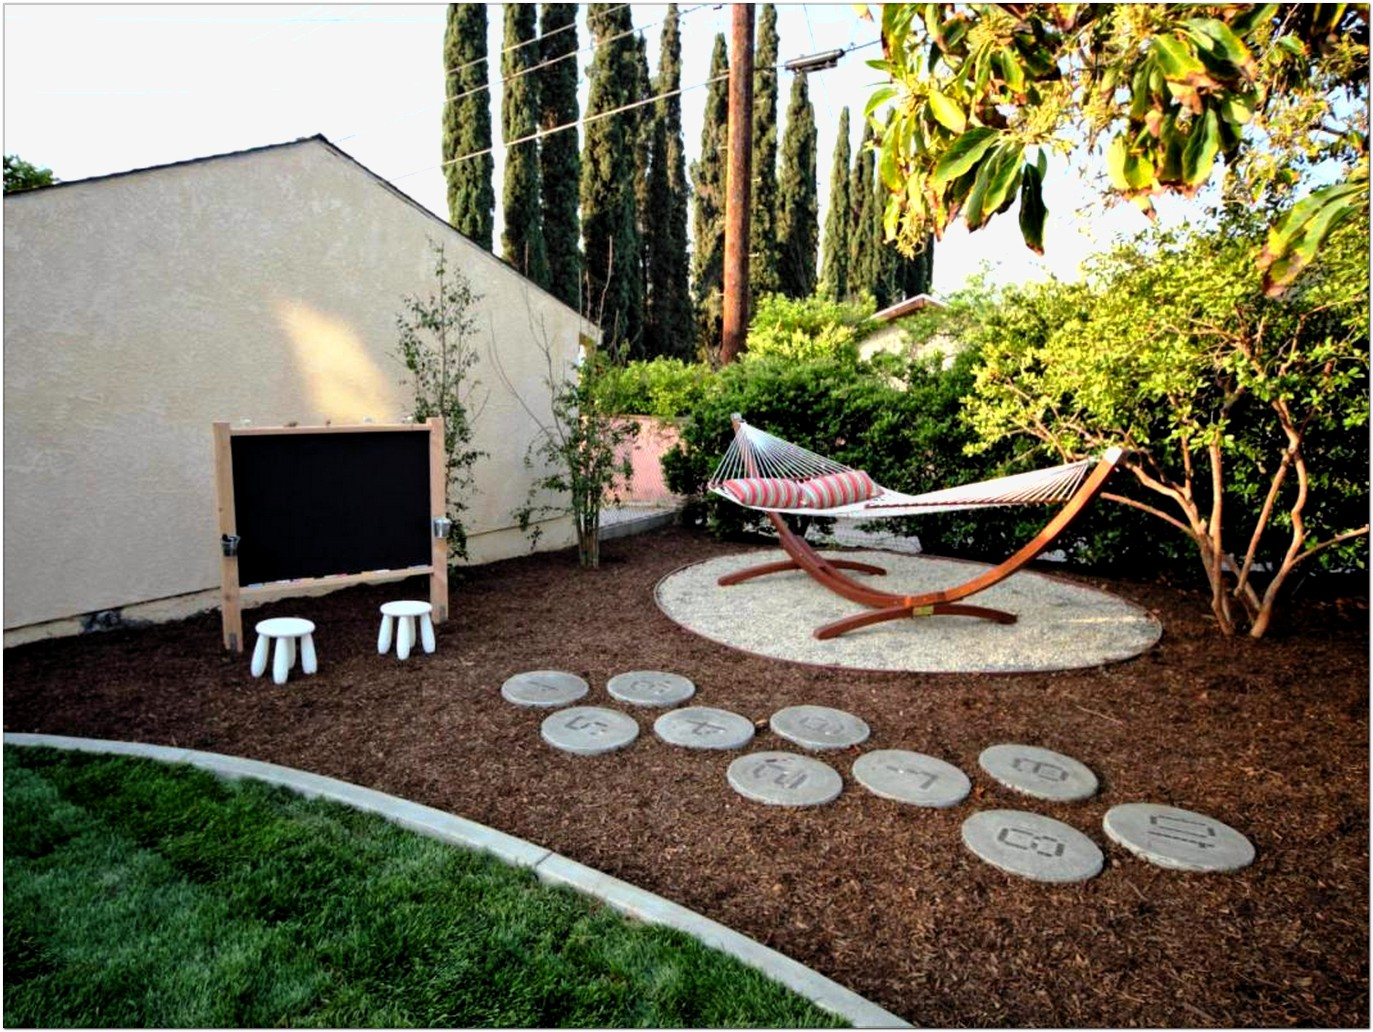 Cool Backyard Ideas For Your Dream Home Carehomedecor with regard to Cool Backyard Ideas